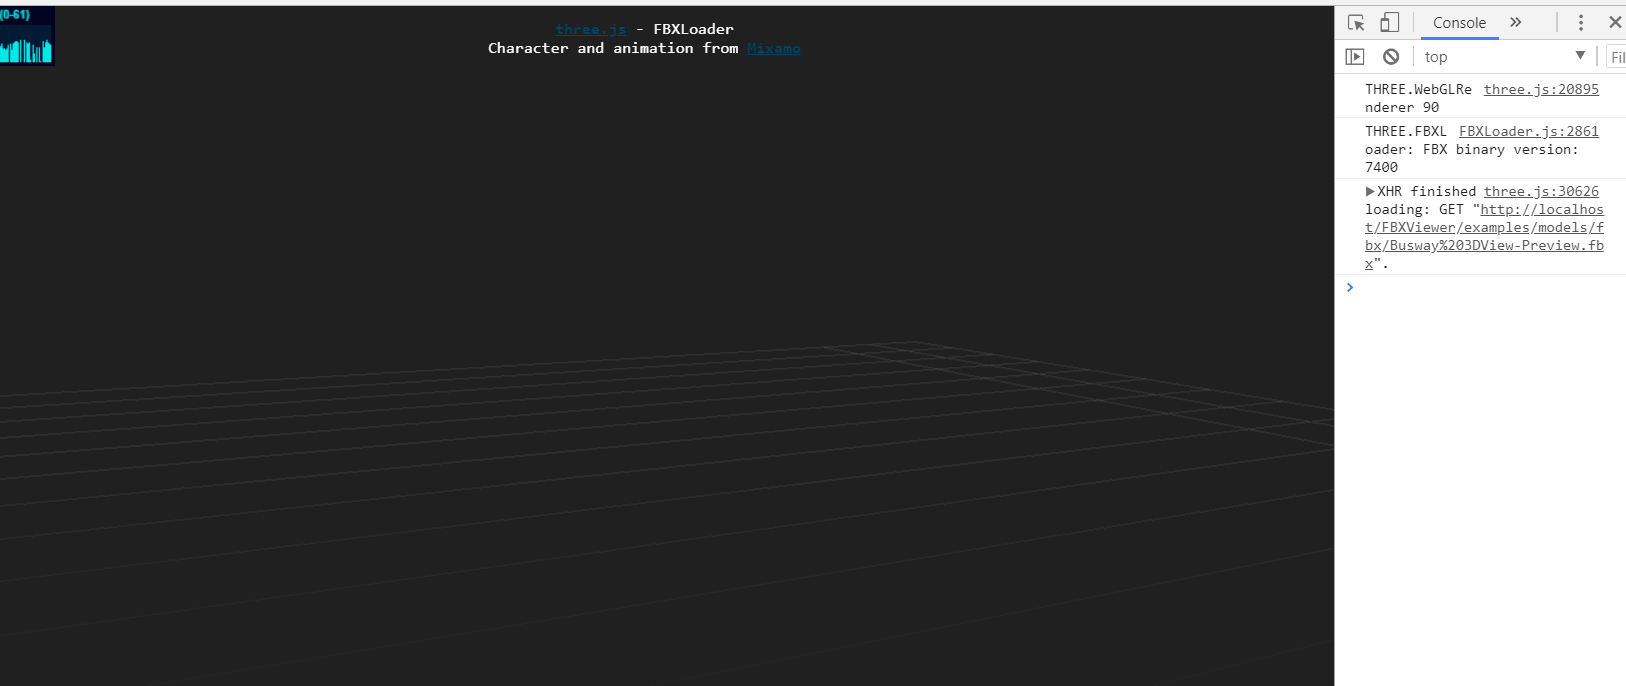 FBXLoader js is not loading the attached fbx & no error in console